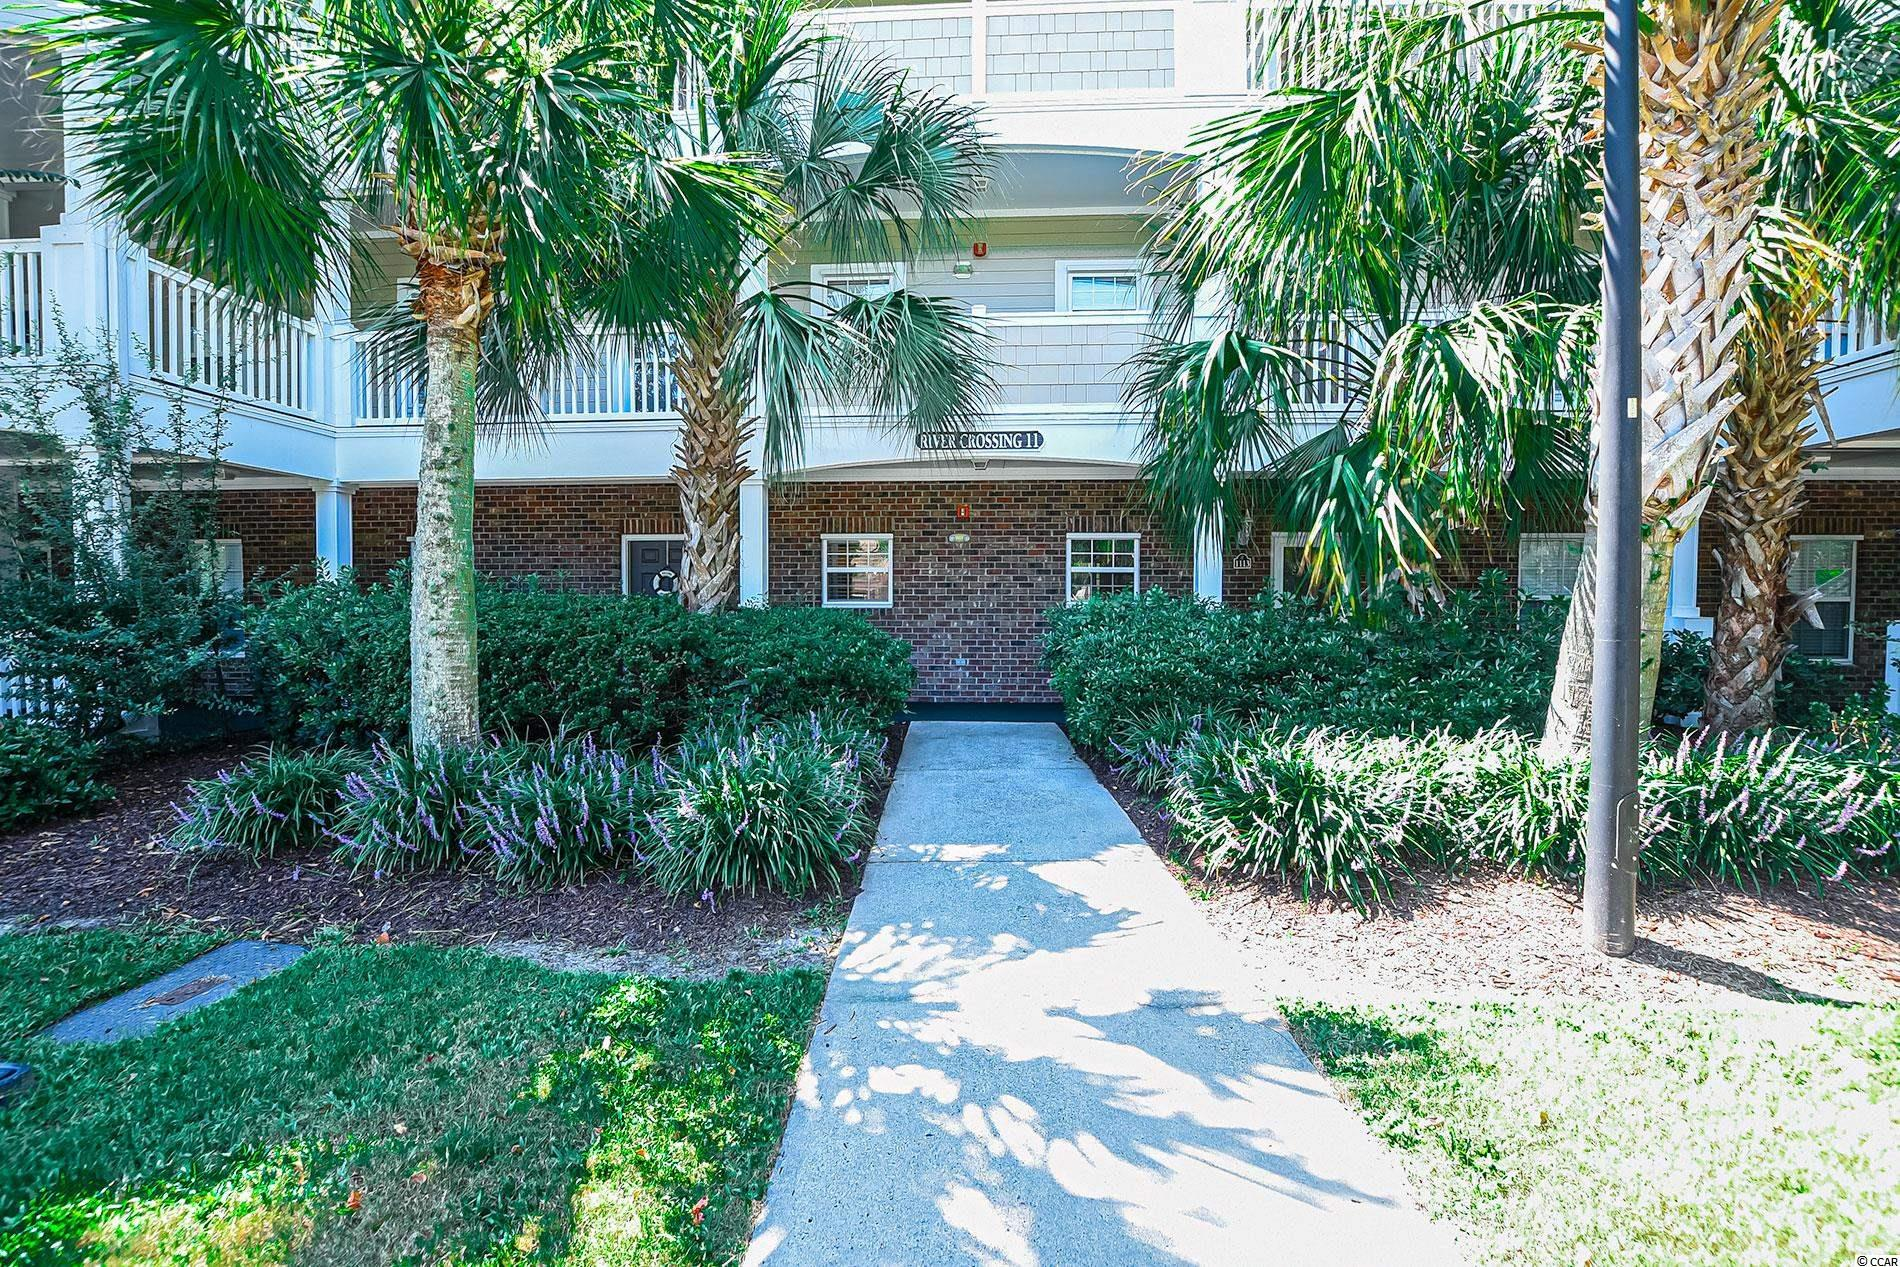 Welcome to River Crossing a gated Barefoot Resort community! This fully-furnished 2BD/2BA  condo has been beautifully maintained and ready for a new owner. The balcony offers tranquil views and you will love the open flow of the unit. Enjoy your the community pool along with all the amenities that come with the ownership of this great unit. You will become part of the Barefoot Resort community which features four golf courses, , access to the private oceanfront beach cabana with a seasonal shuttle, the large saltwater pool at the Towers. the marina offers great restaurants, and if this isn't enough right across the swing bridge you will find Barefoot Landing filled with great eateries, specialty shops and seasonal entertainment. What a great place all located on 15,000 luxurious acres